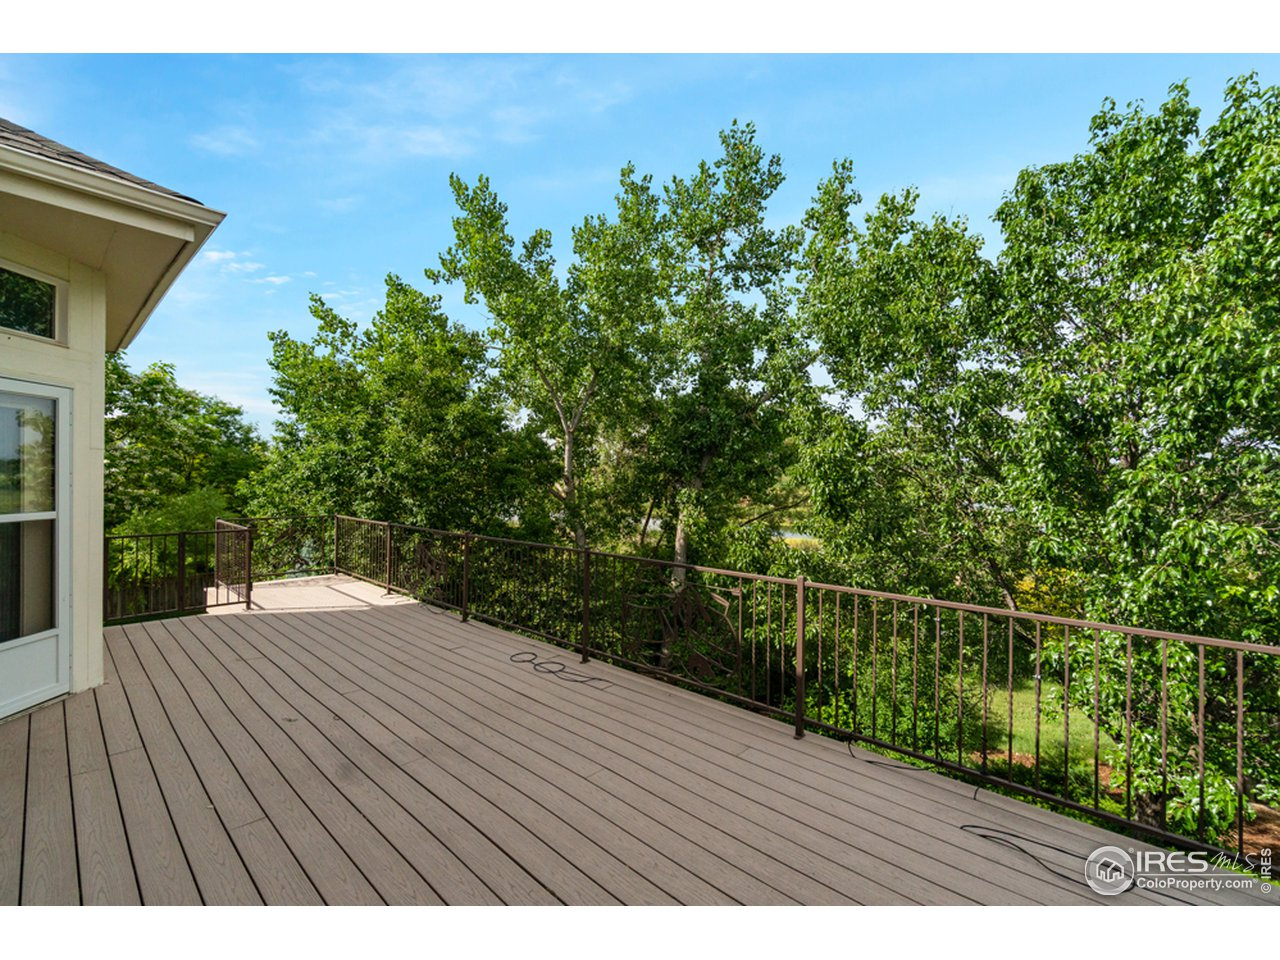 Large Deck with Artistic Iron Railing